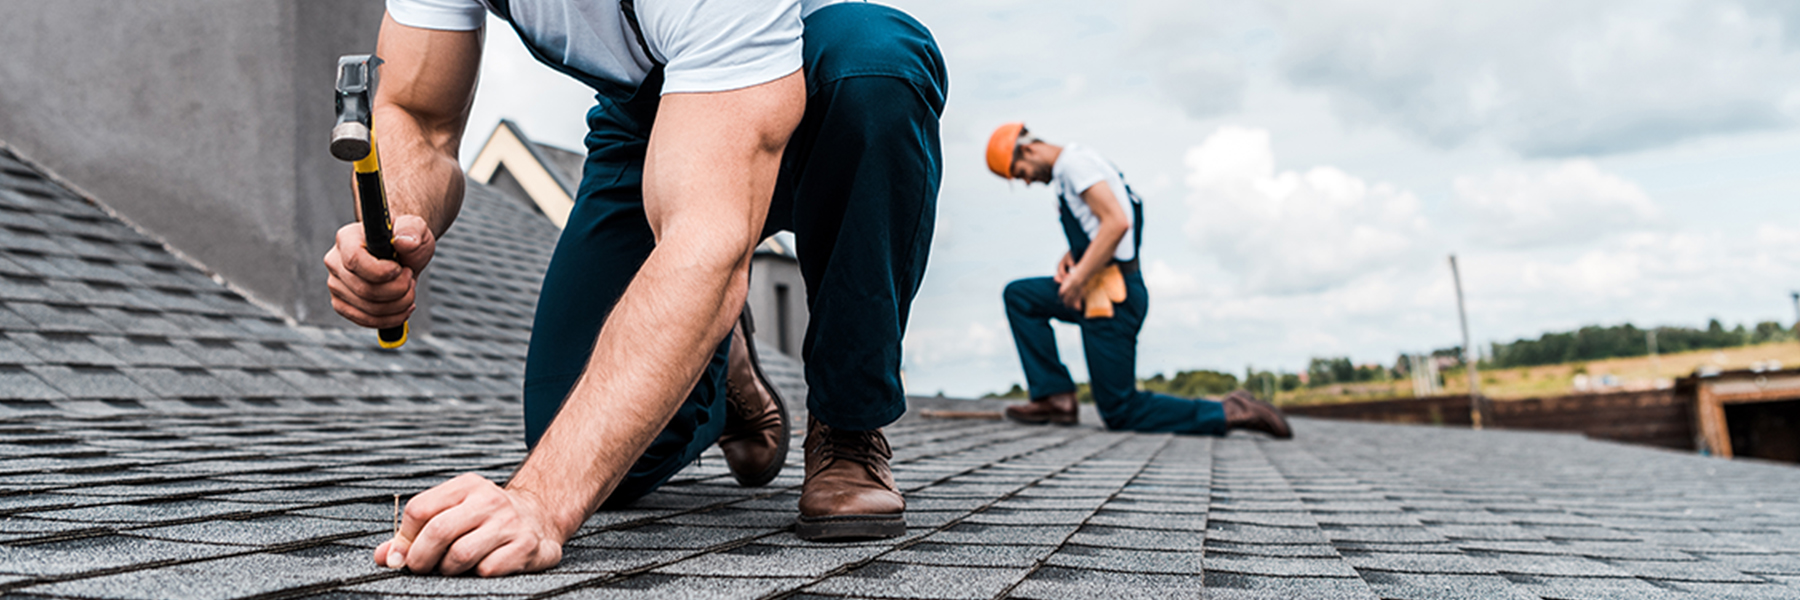 Debunking 5 Common Roofing Myths and FAQs